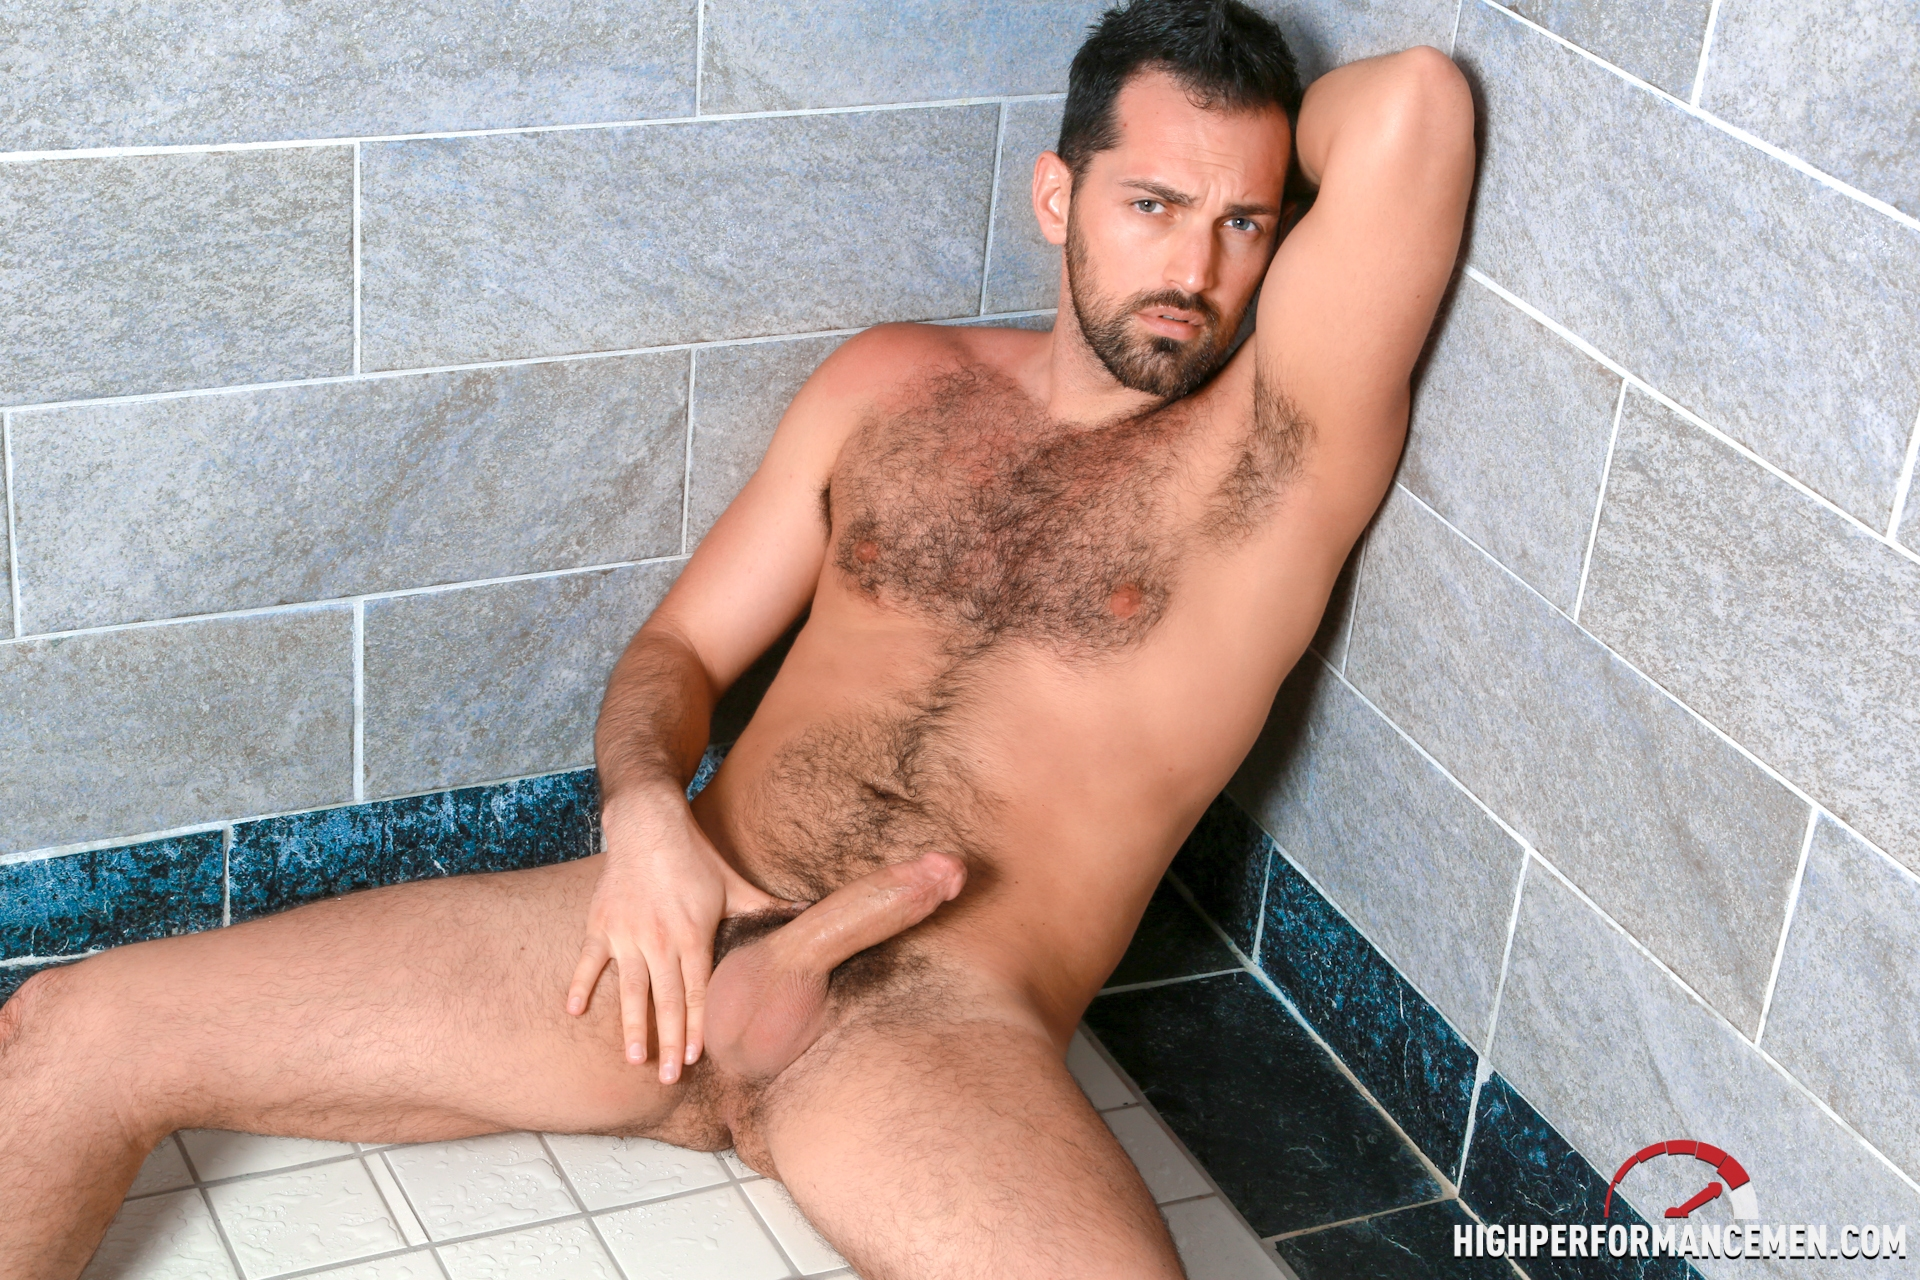 Gay men with hairy chest he deep throats 6